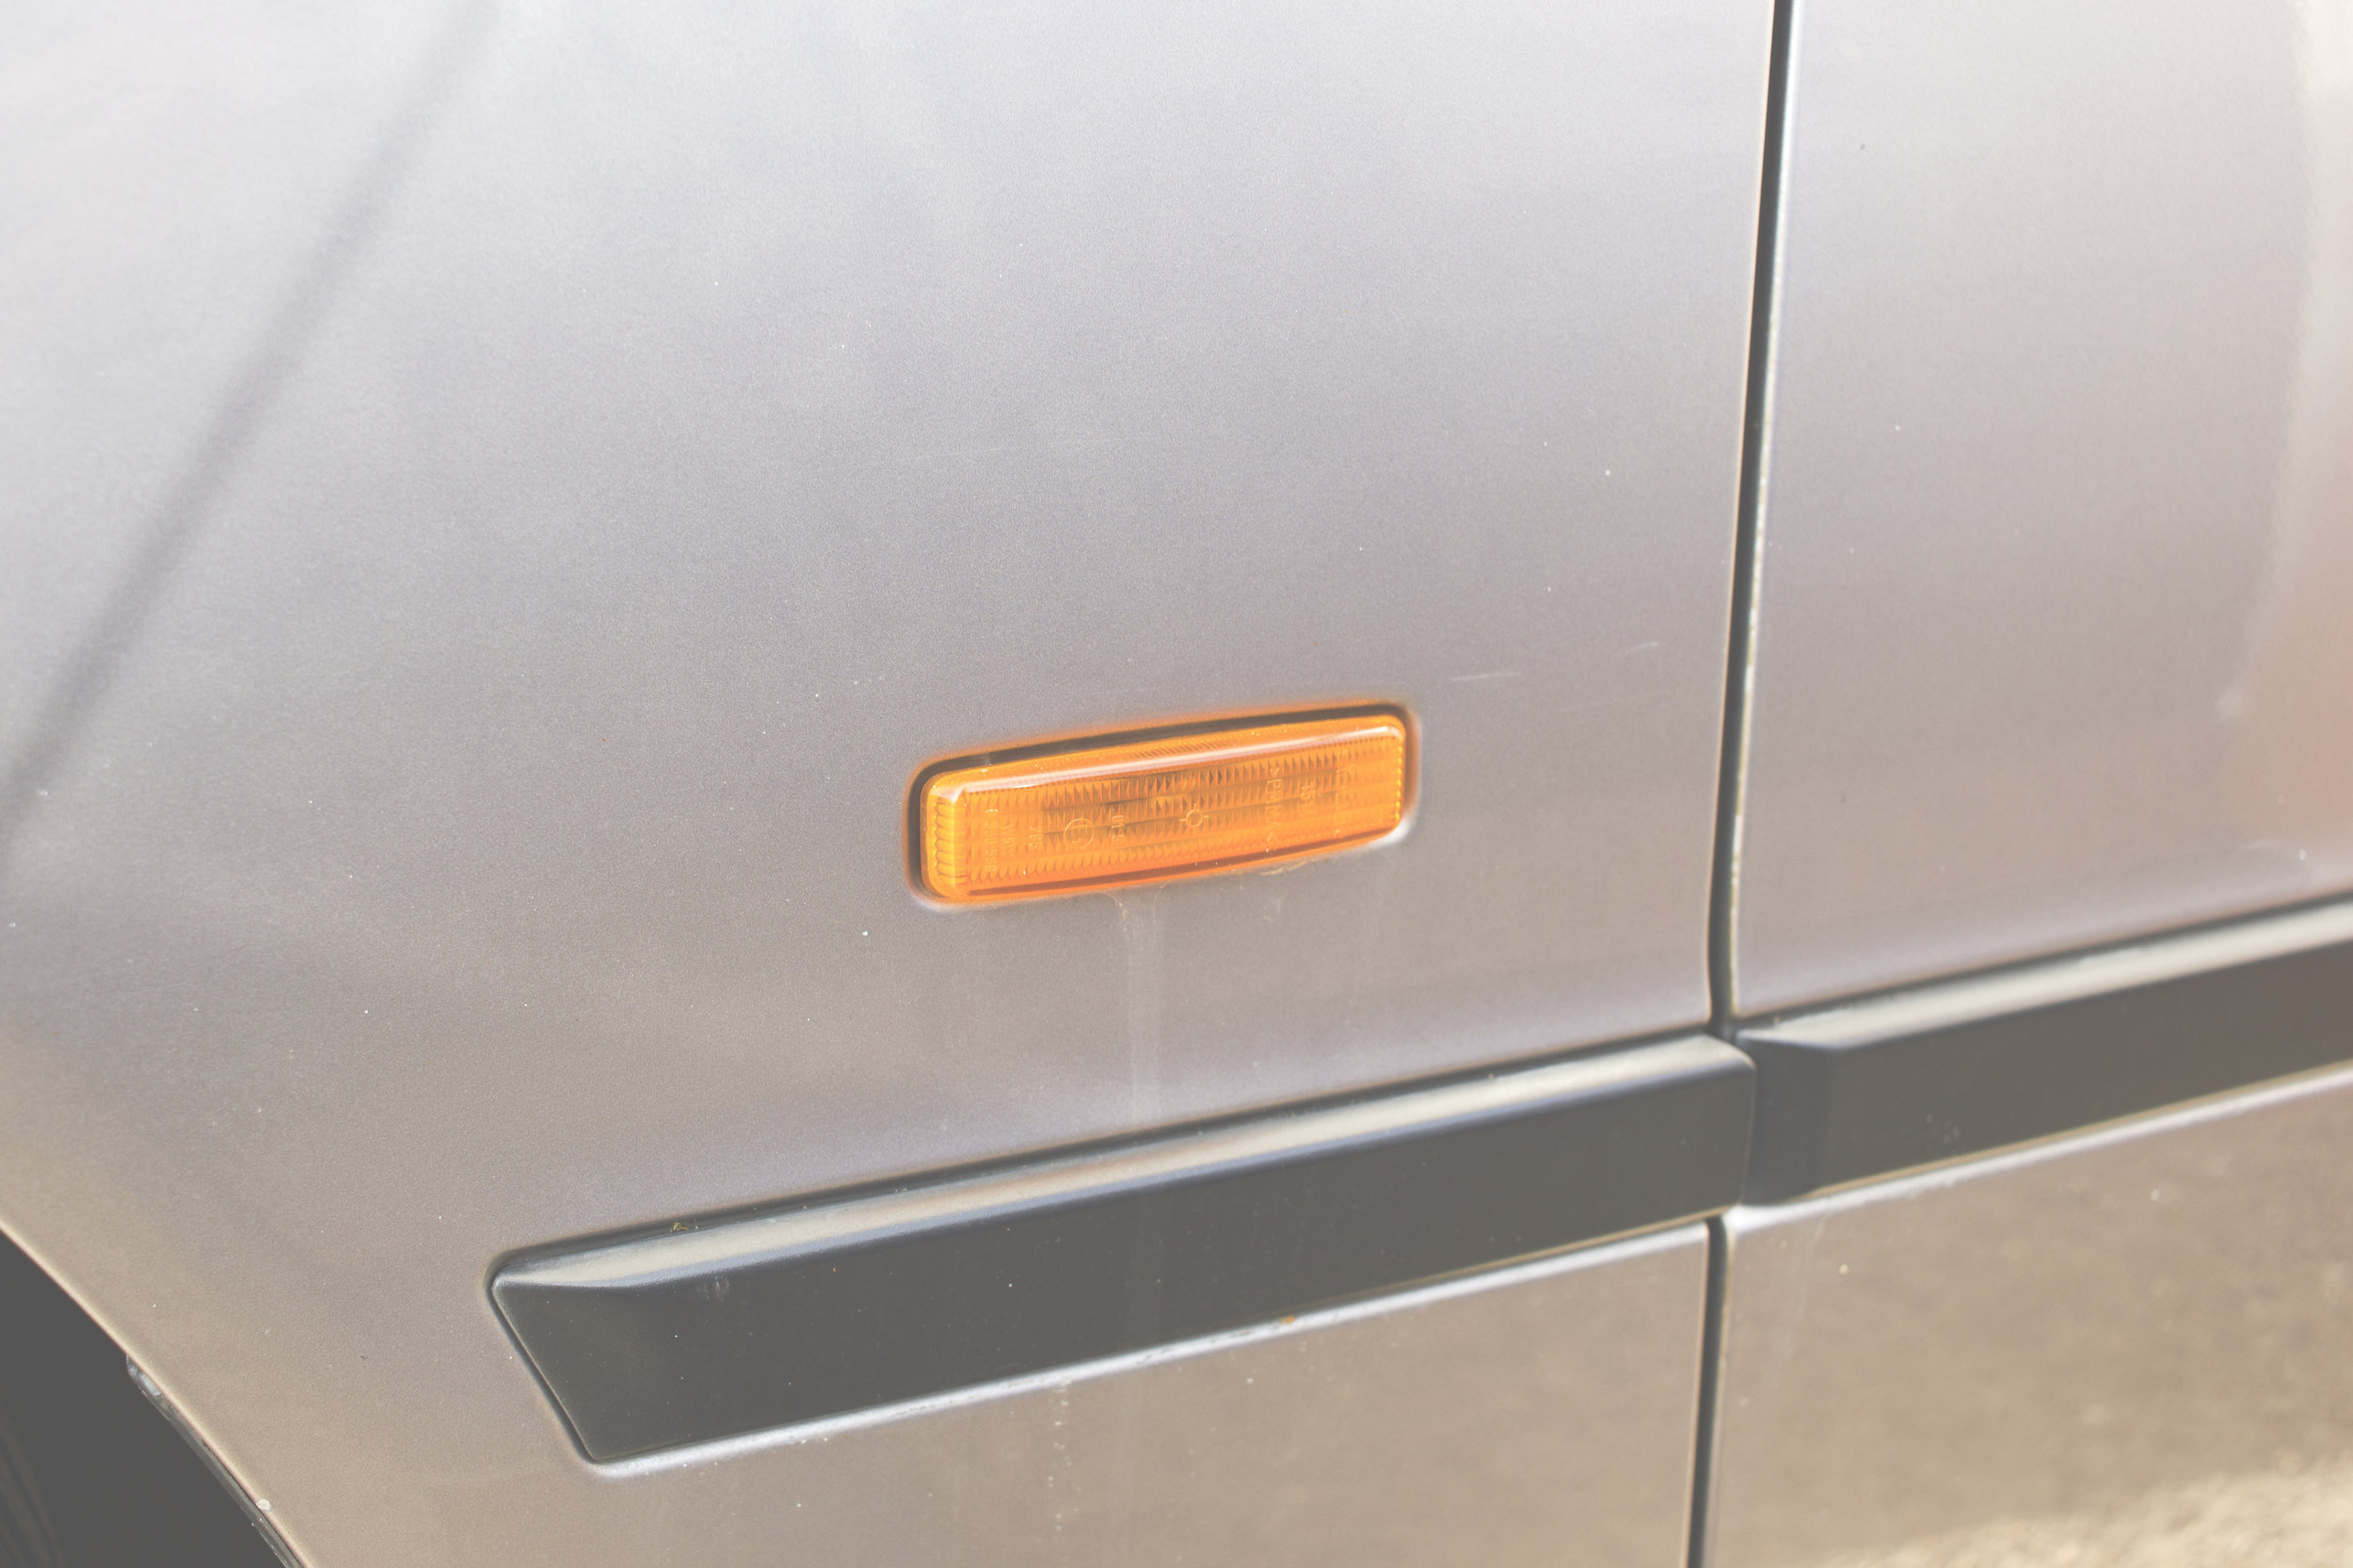 Mömus BMW E39 Pre Facelift Orange Amber Indicator side marker blinker